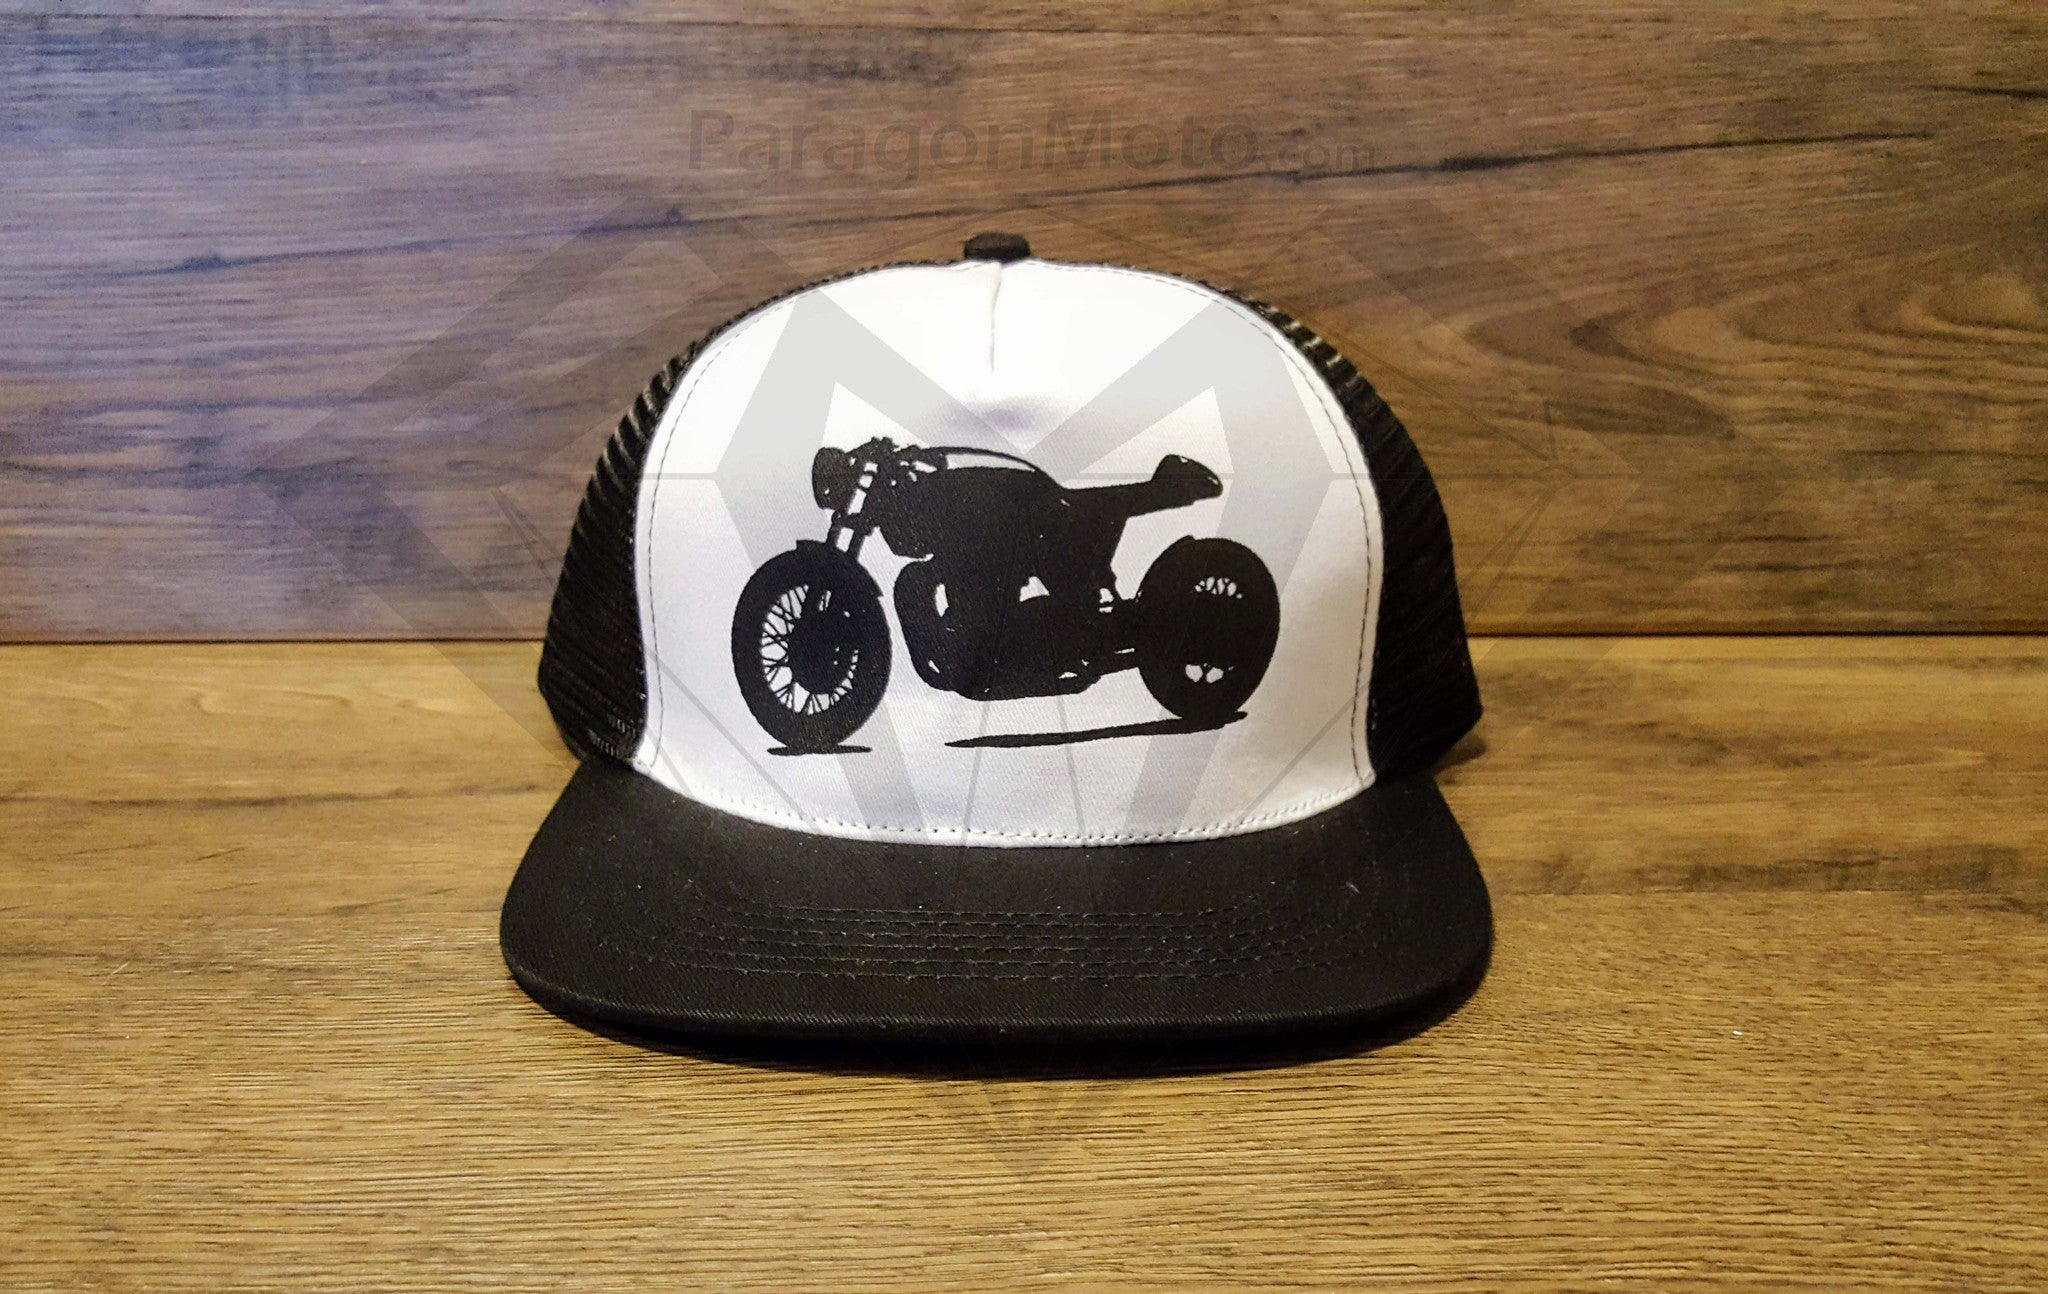 Paragon Moto's Cafe Racer Cotton Mesh Trucker Hats - Various Colors & Designs - Paragon Moto  - 5